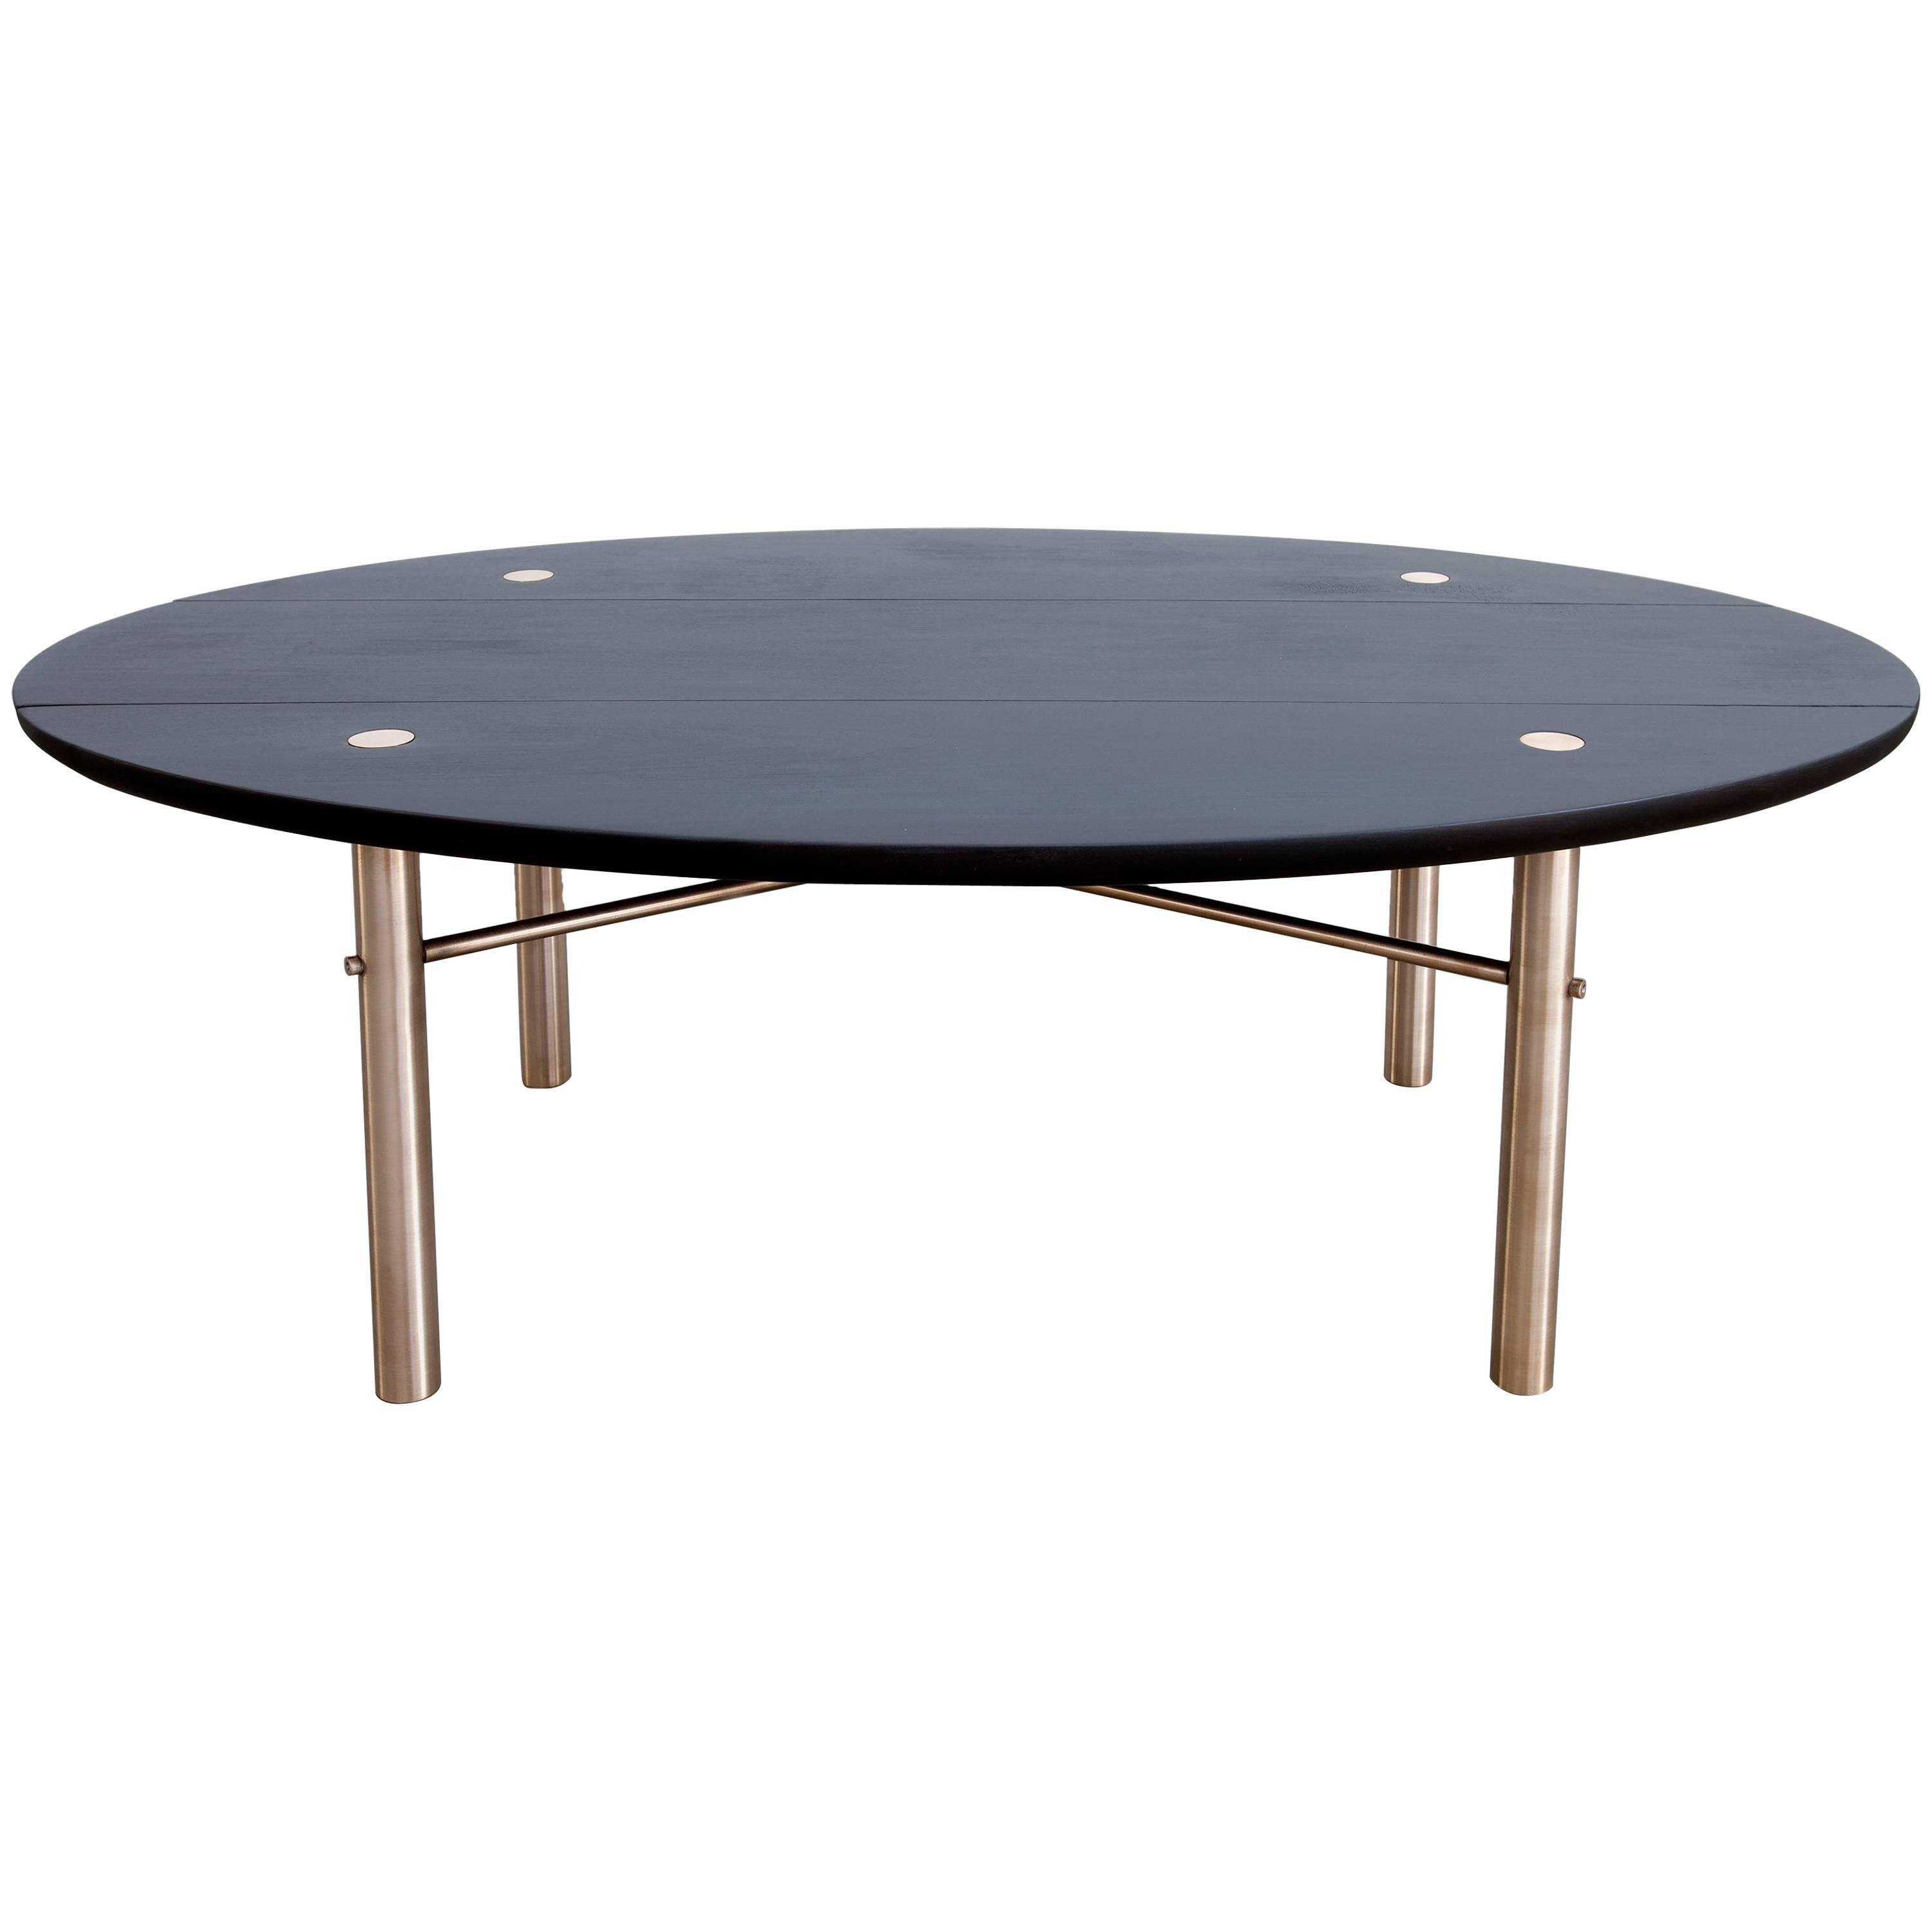 Connect Low Table in Customizable Charred Hardwood Maple and Patinated Bronze